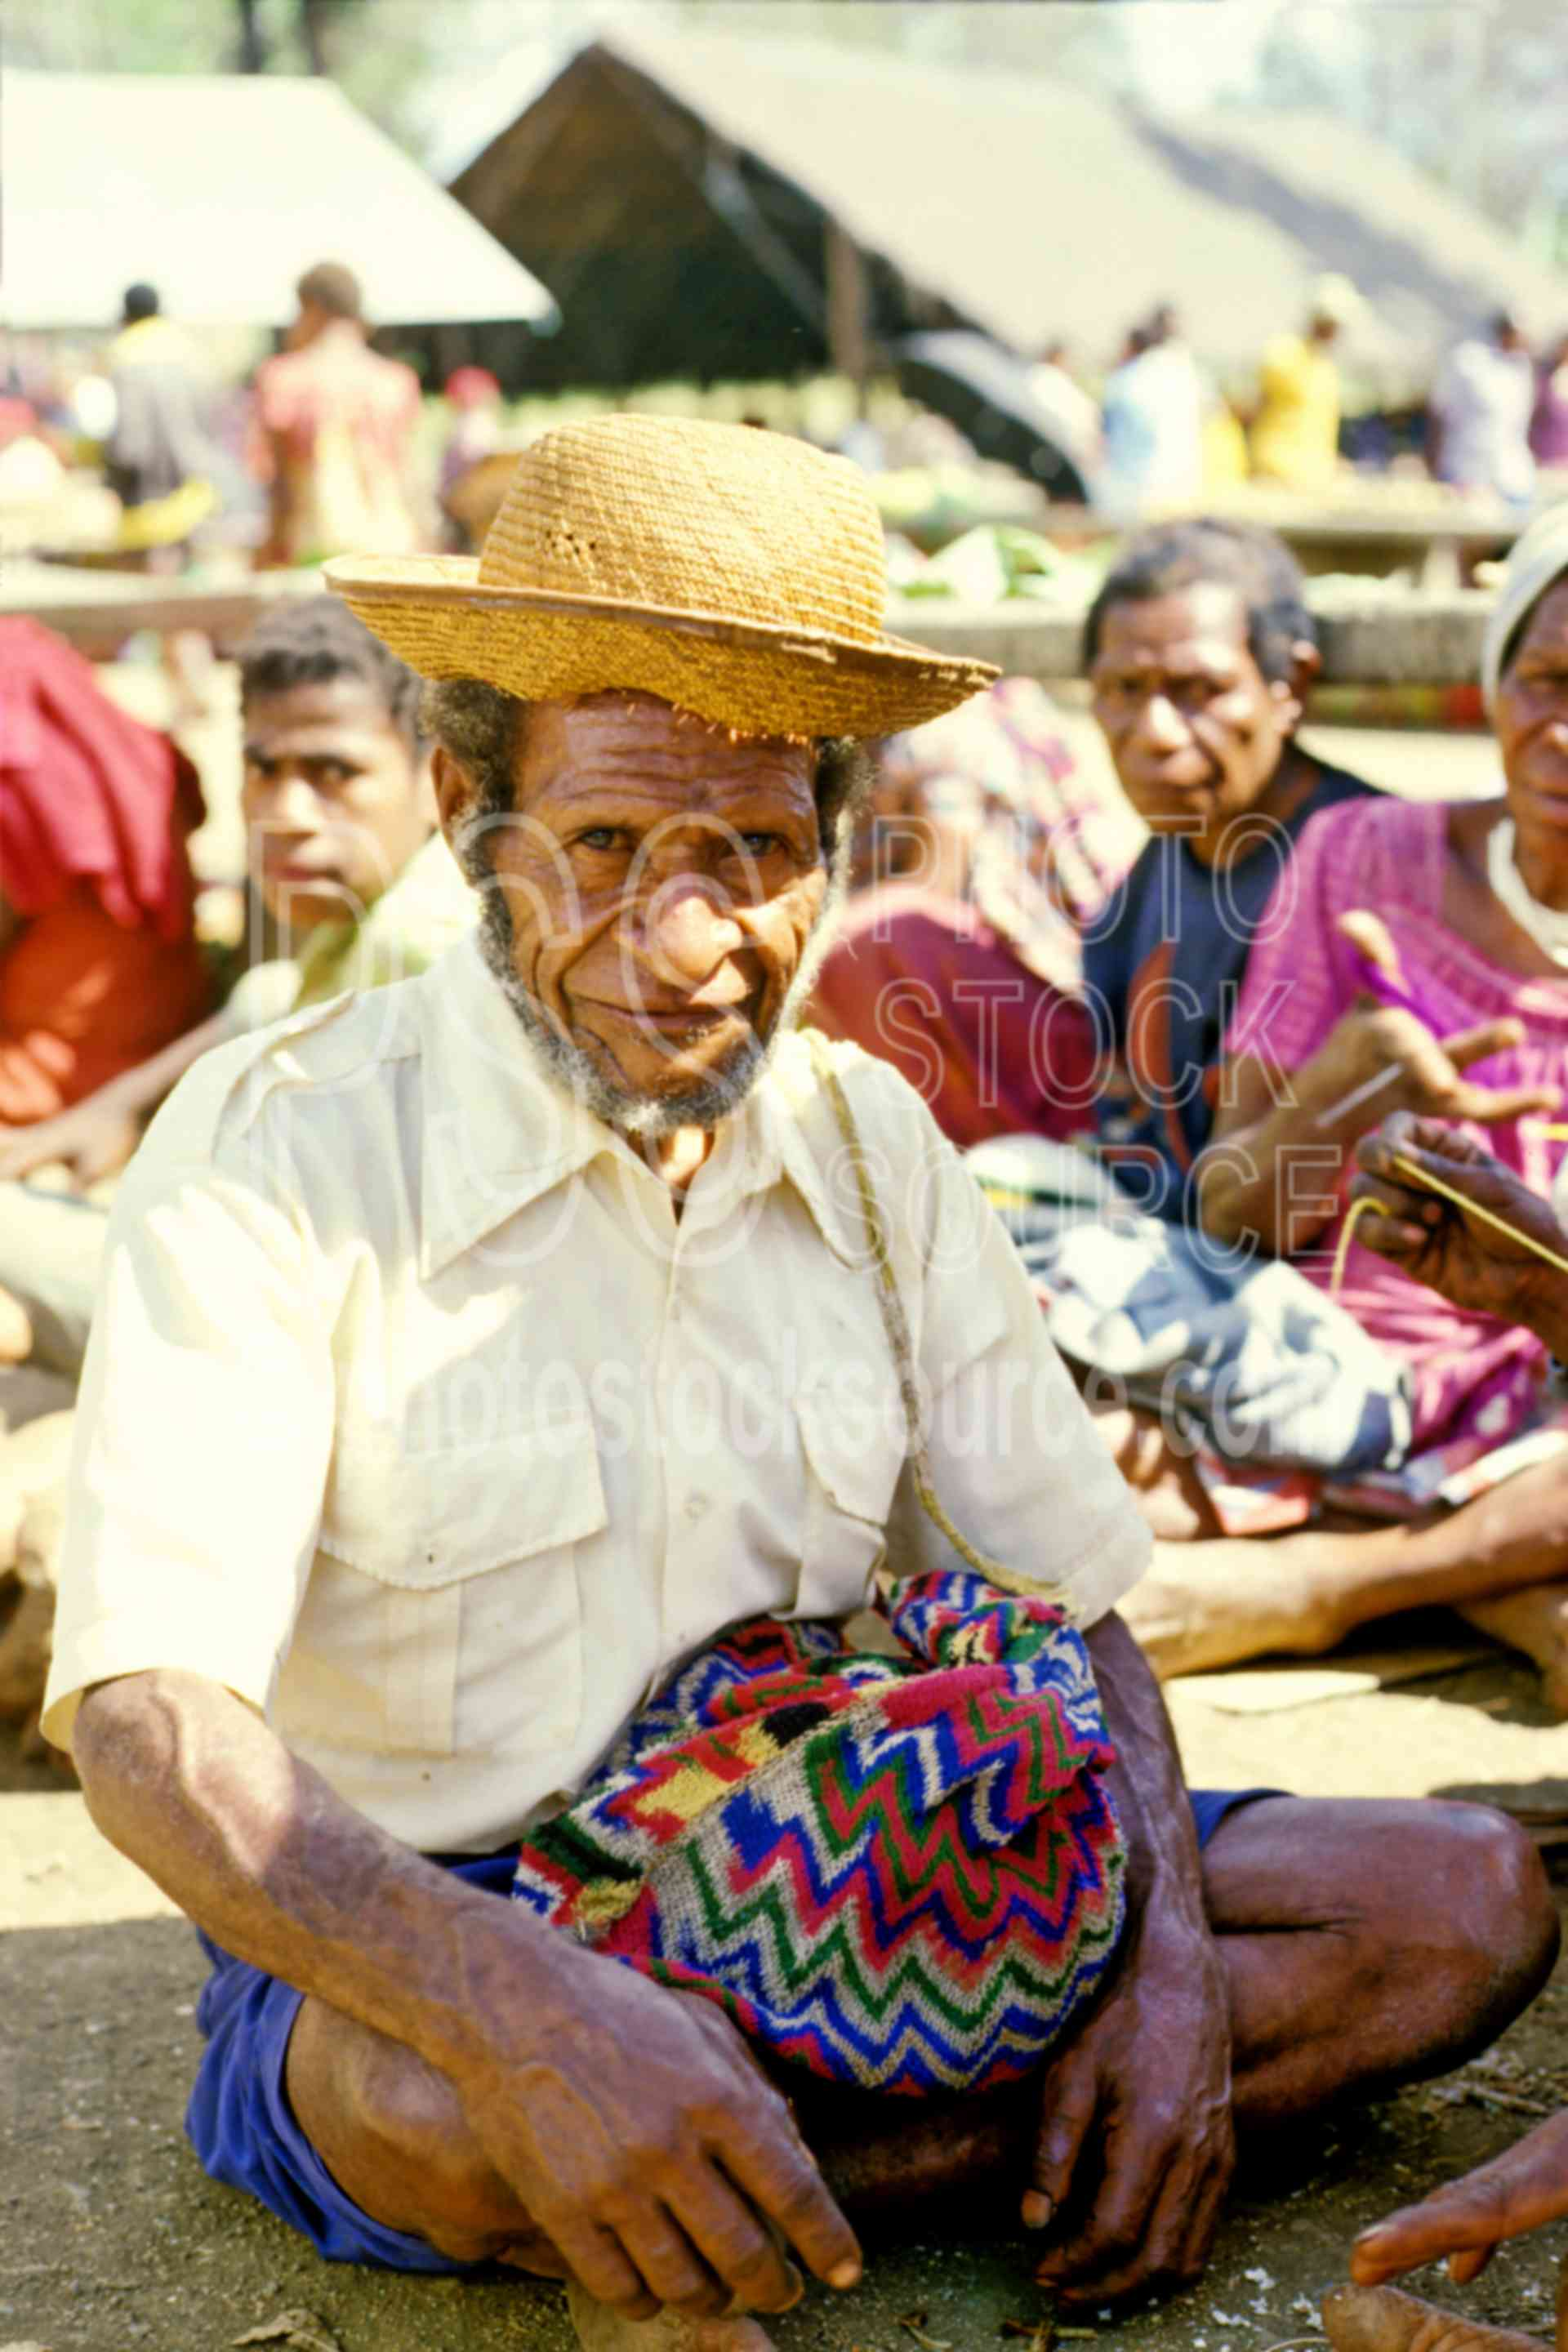 Man at market,bags,hats,mans,market,png markets